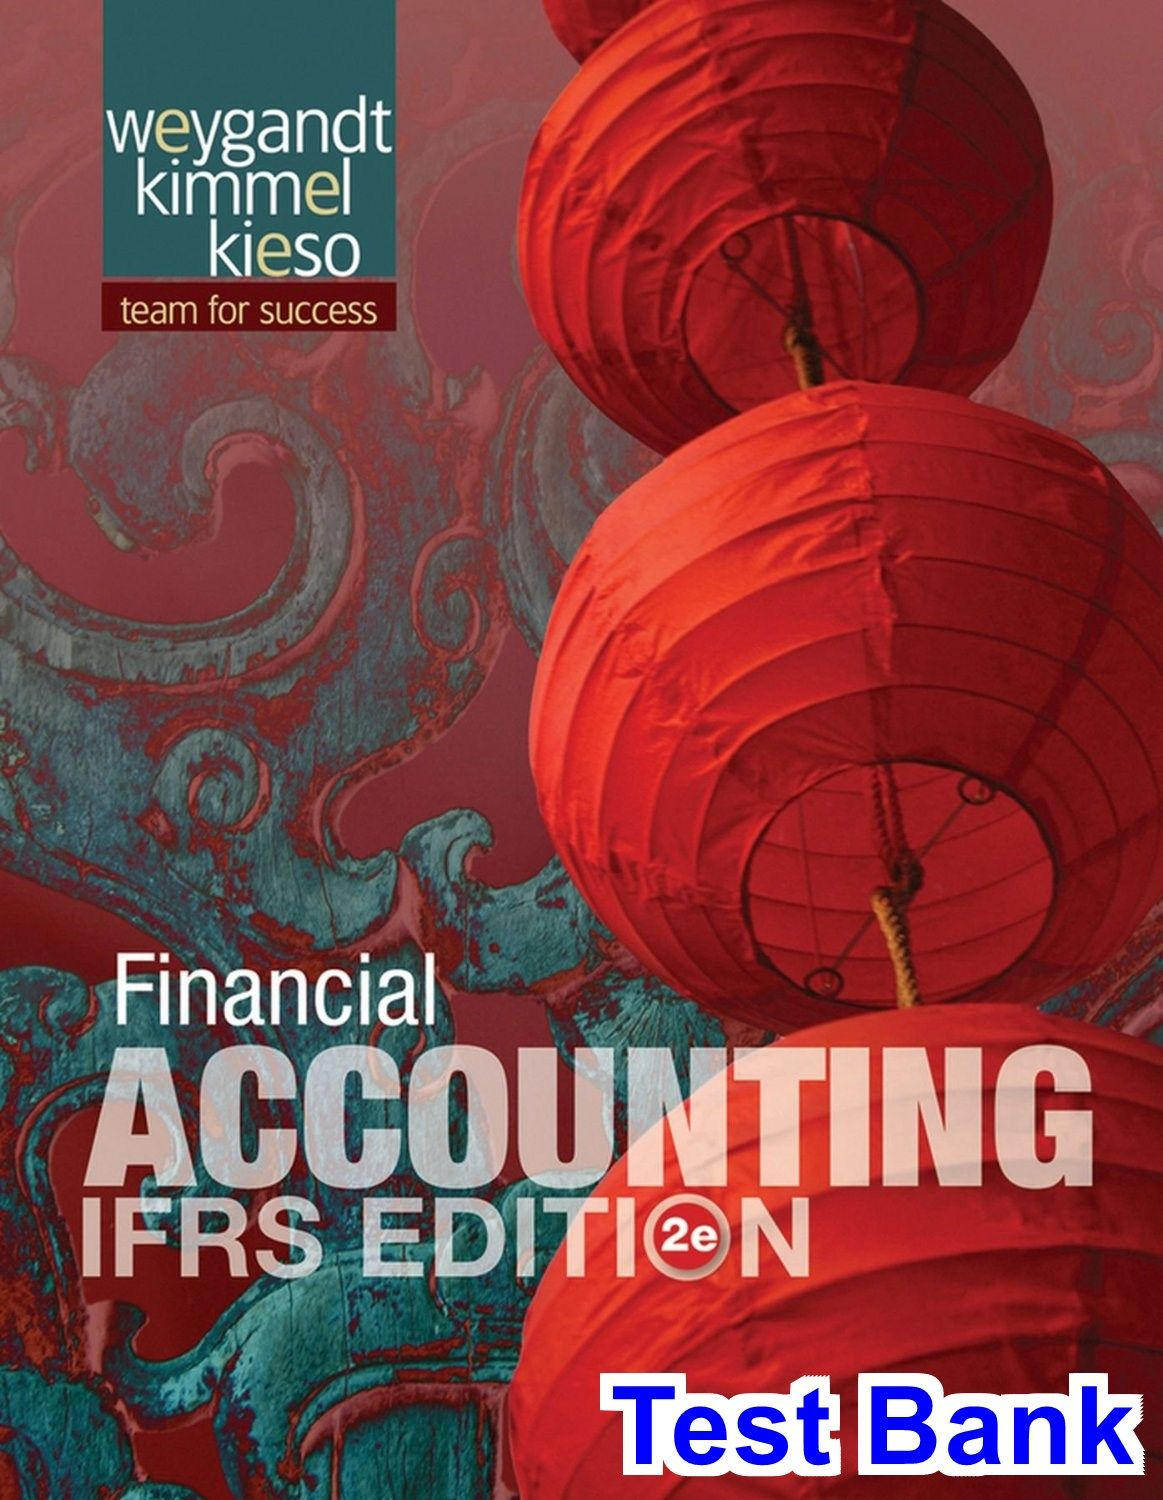 Financial accounting ifrs edition 2nd edition weygandt test bank financial accounting ifrs edition 2nd edition weygandt test bank test bank solutions manual fandeluxe